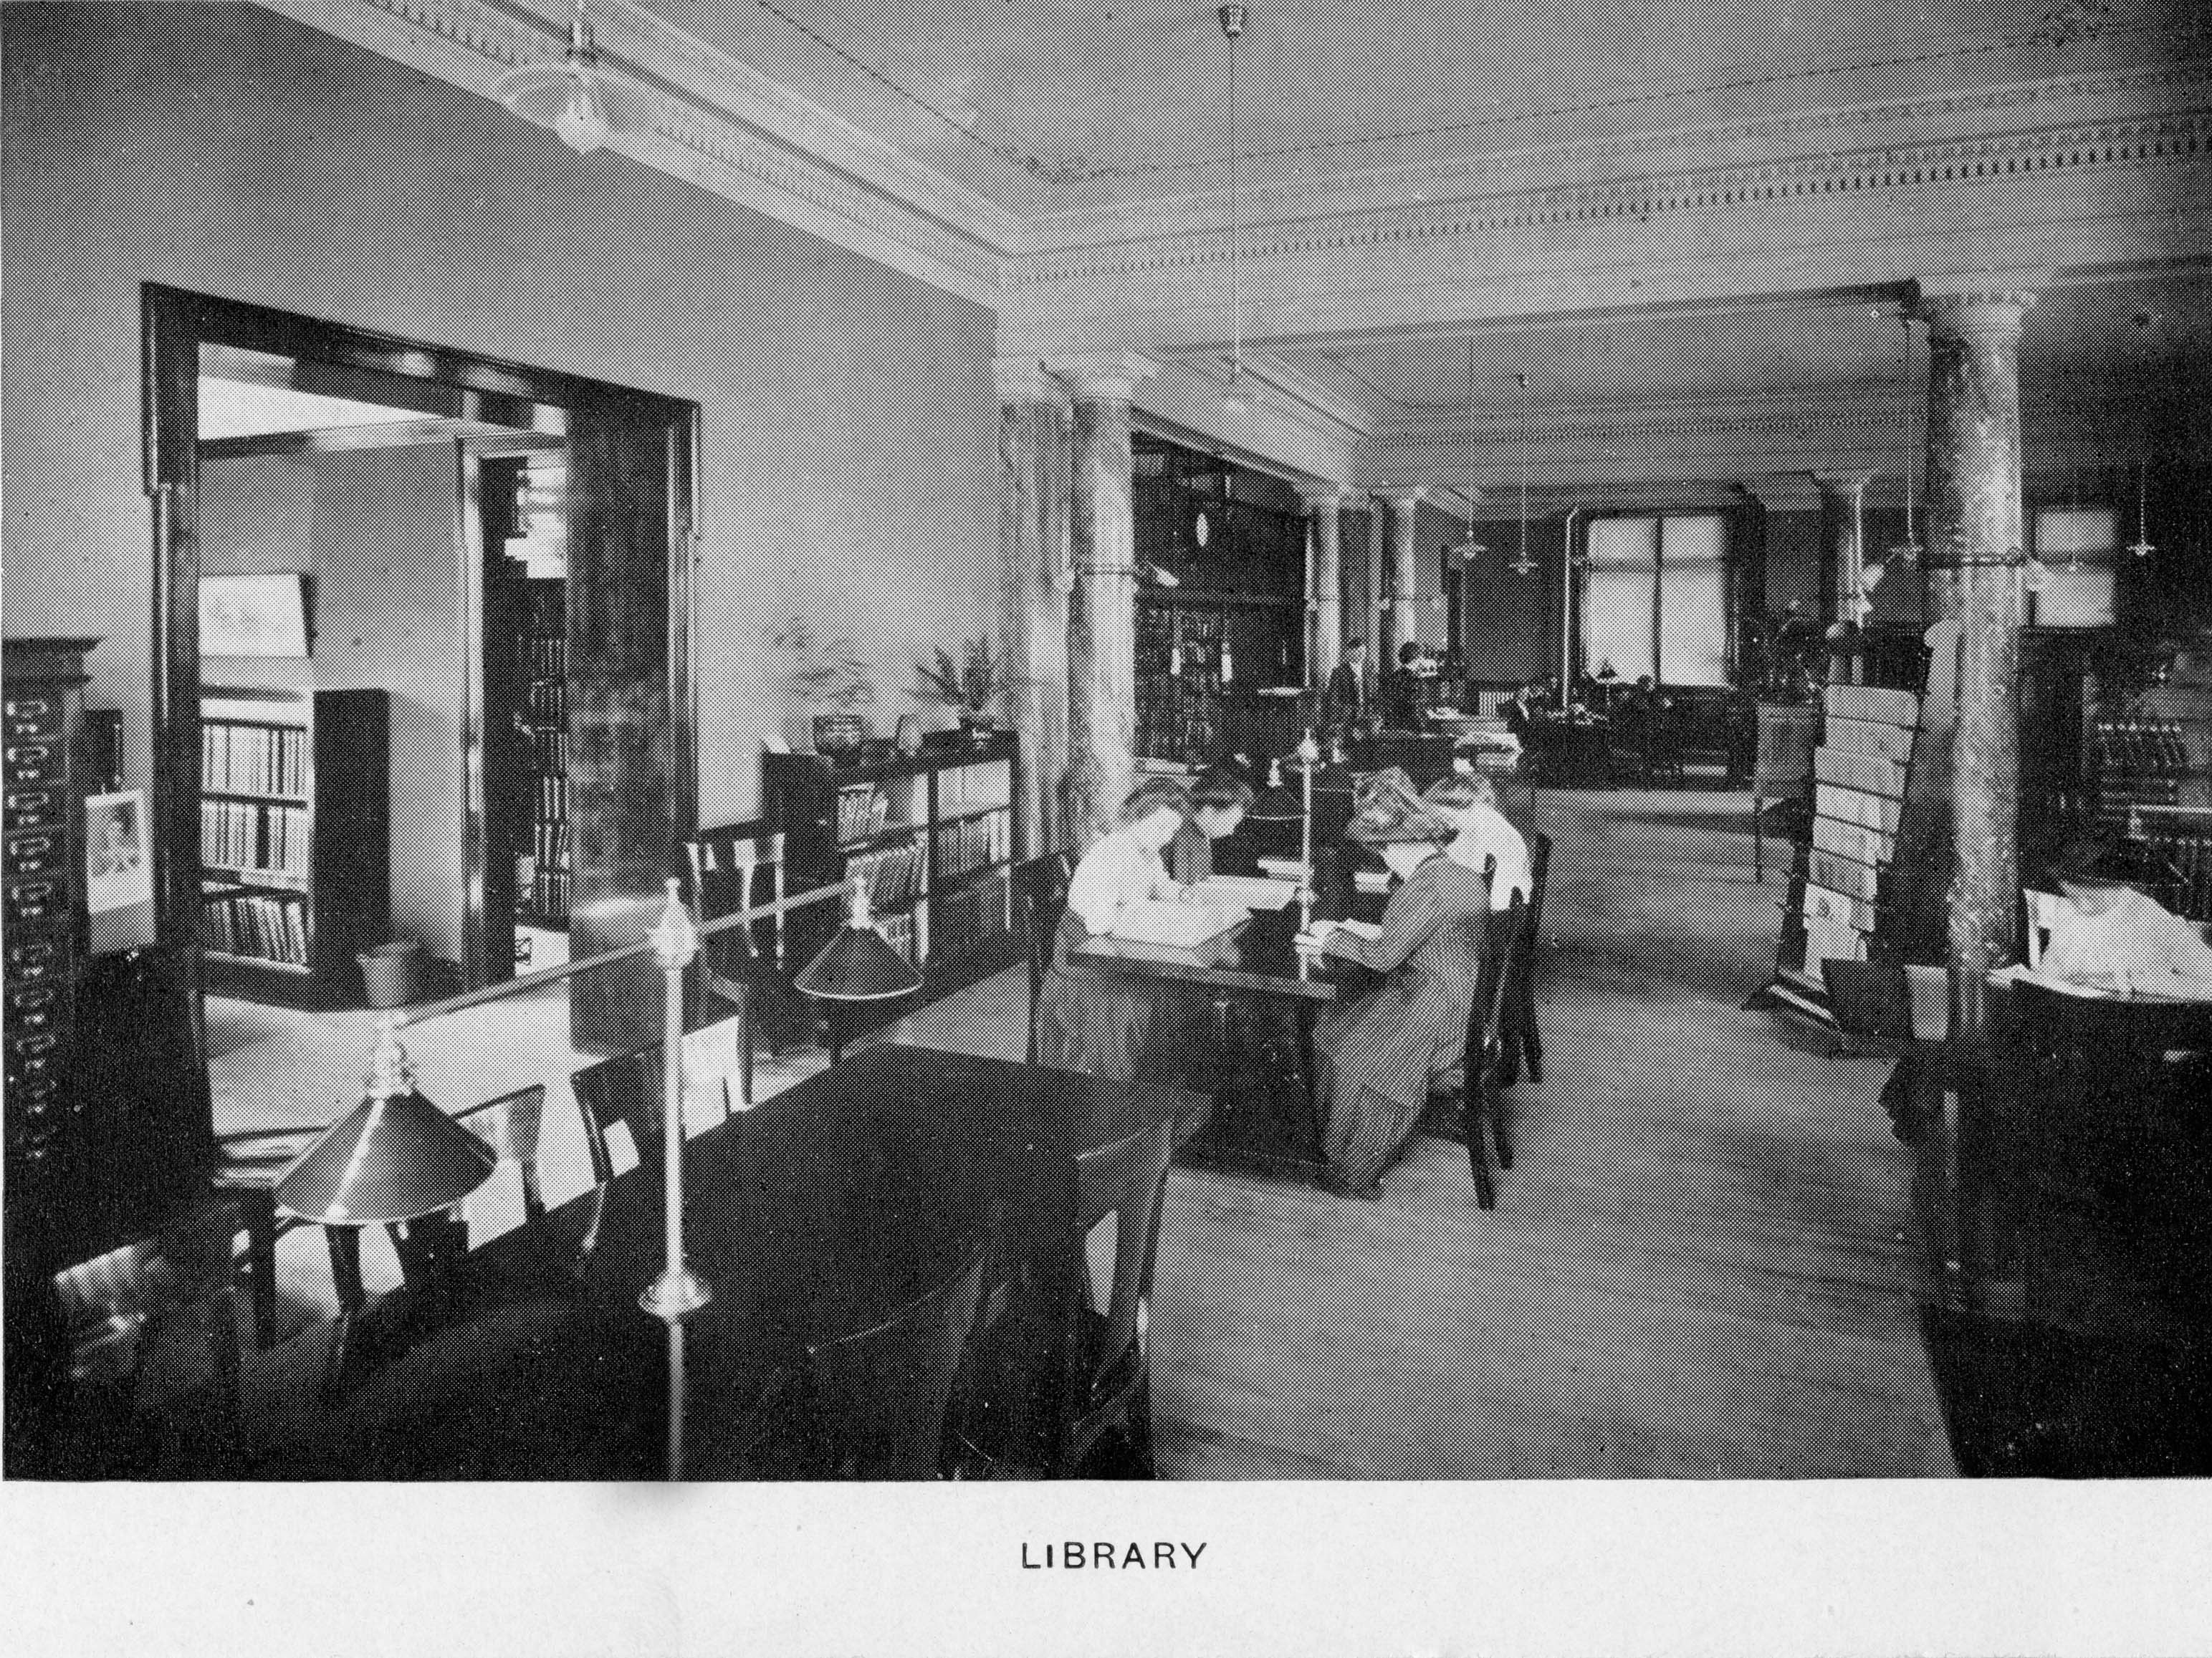 Carnegie Library Interior image